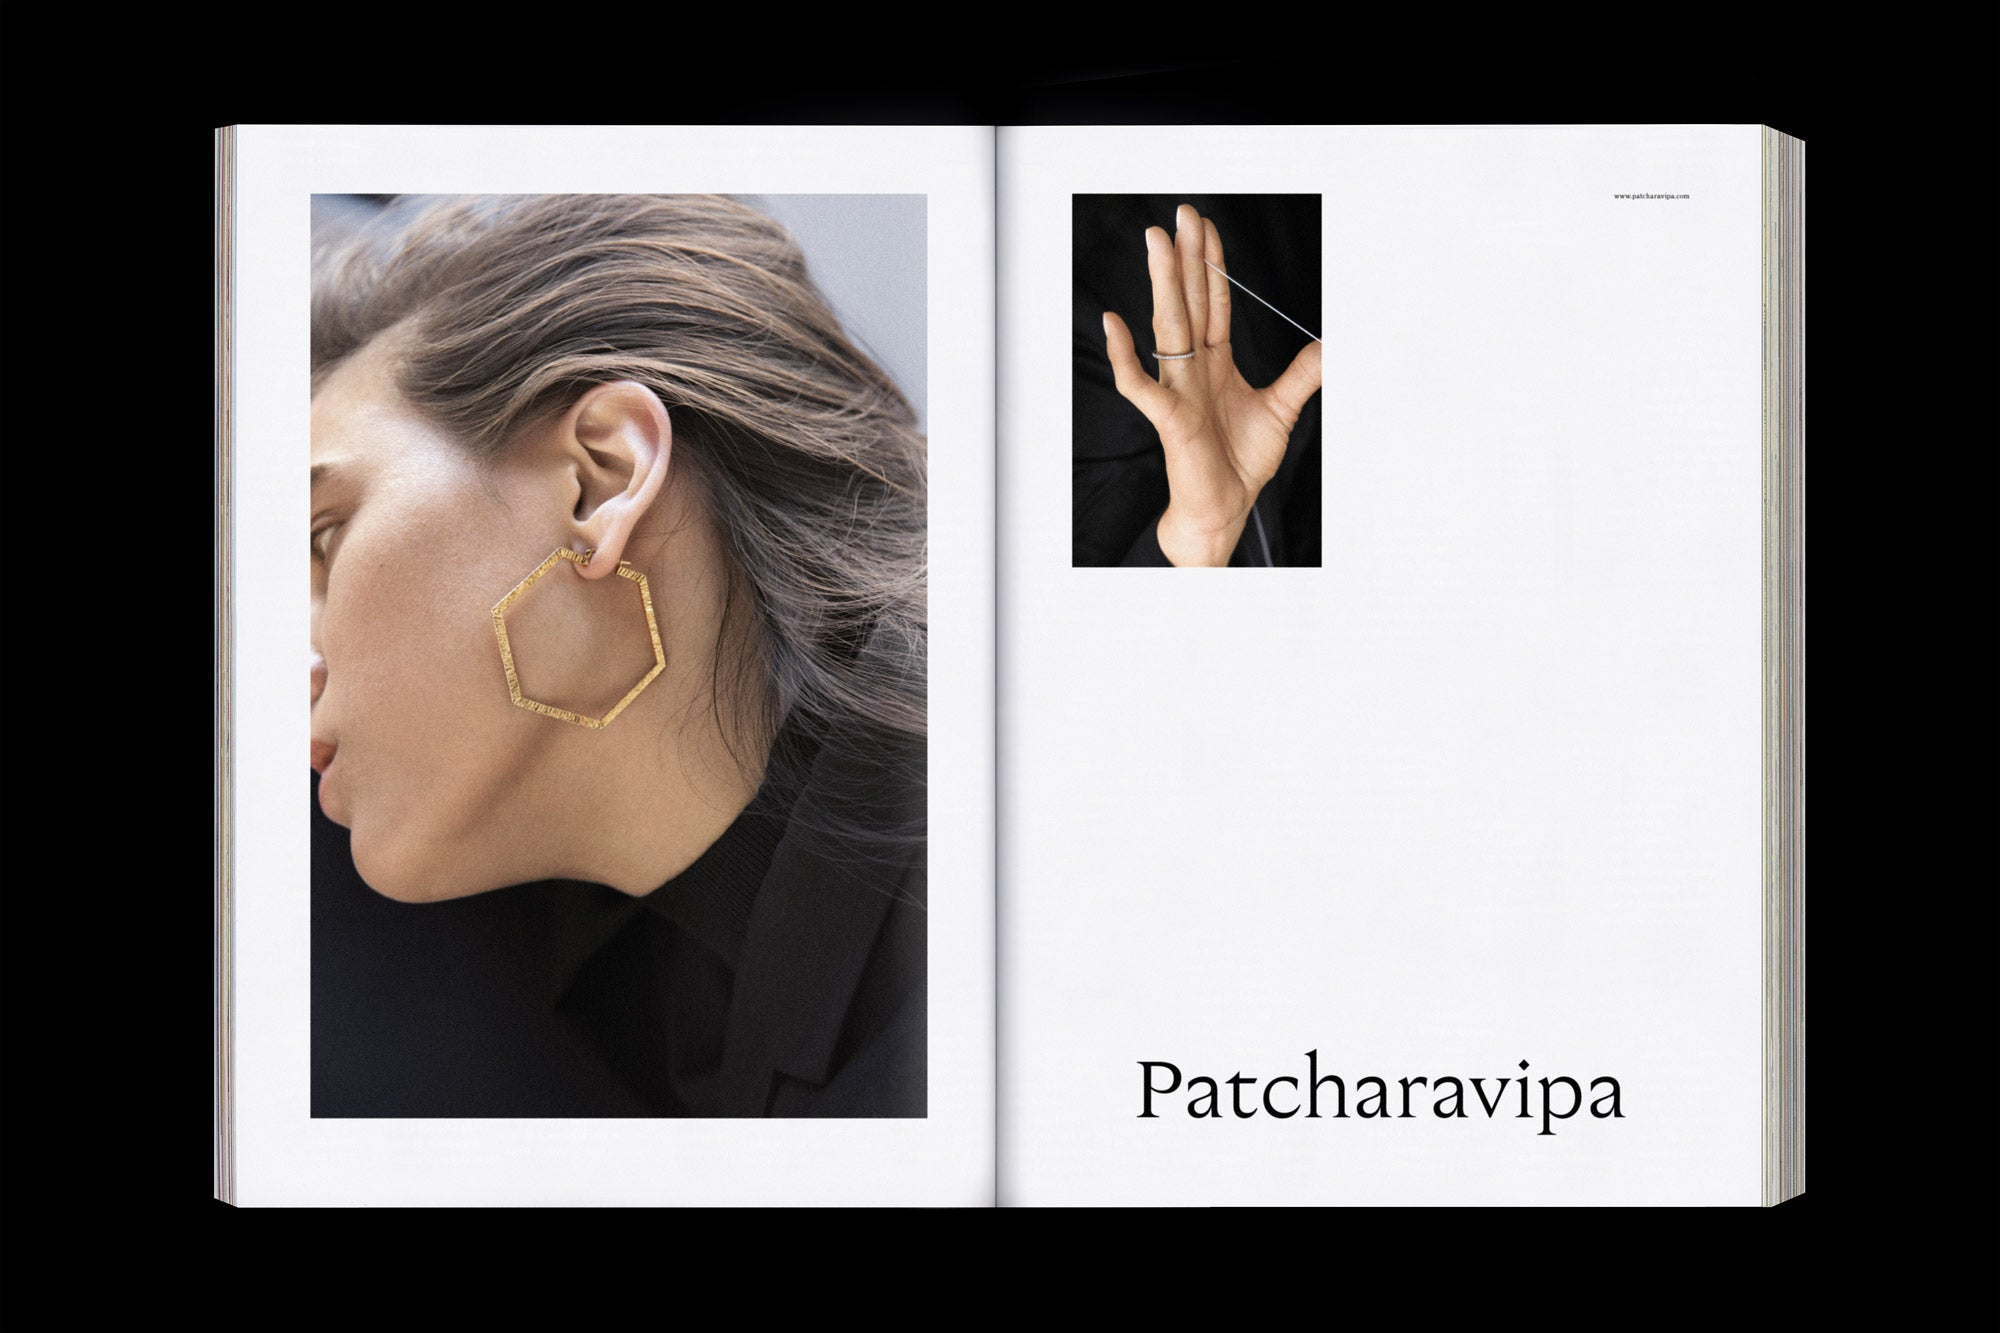 OK-RM: Patcharavipa, Movements